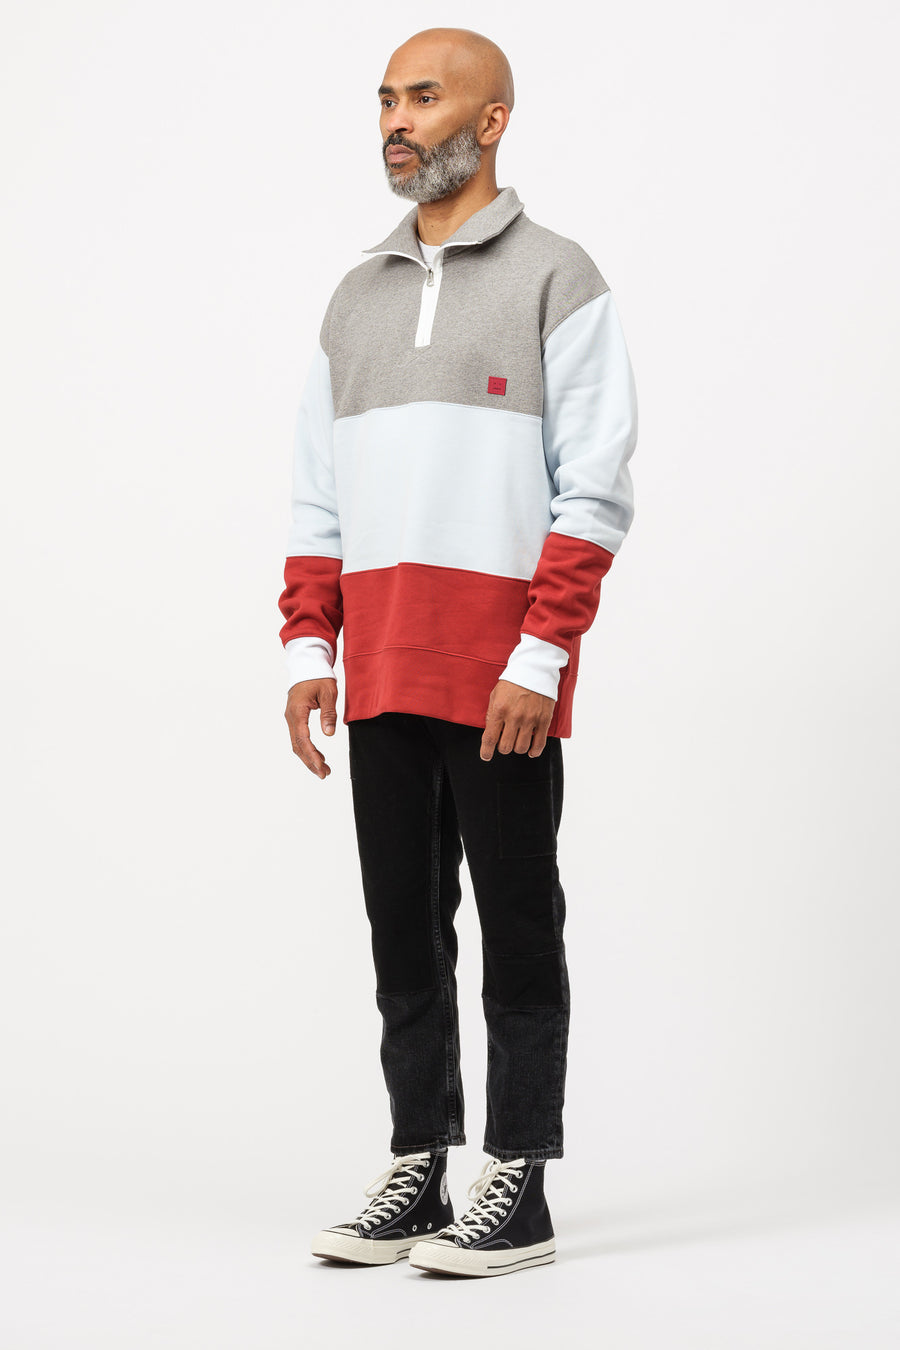 Acne Studios Flint Flag Fleece in Light Grey Melange - Notre